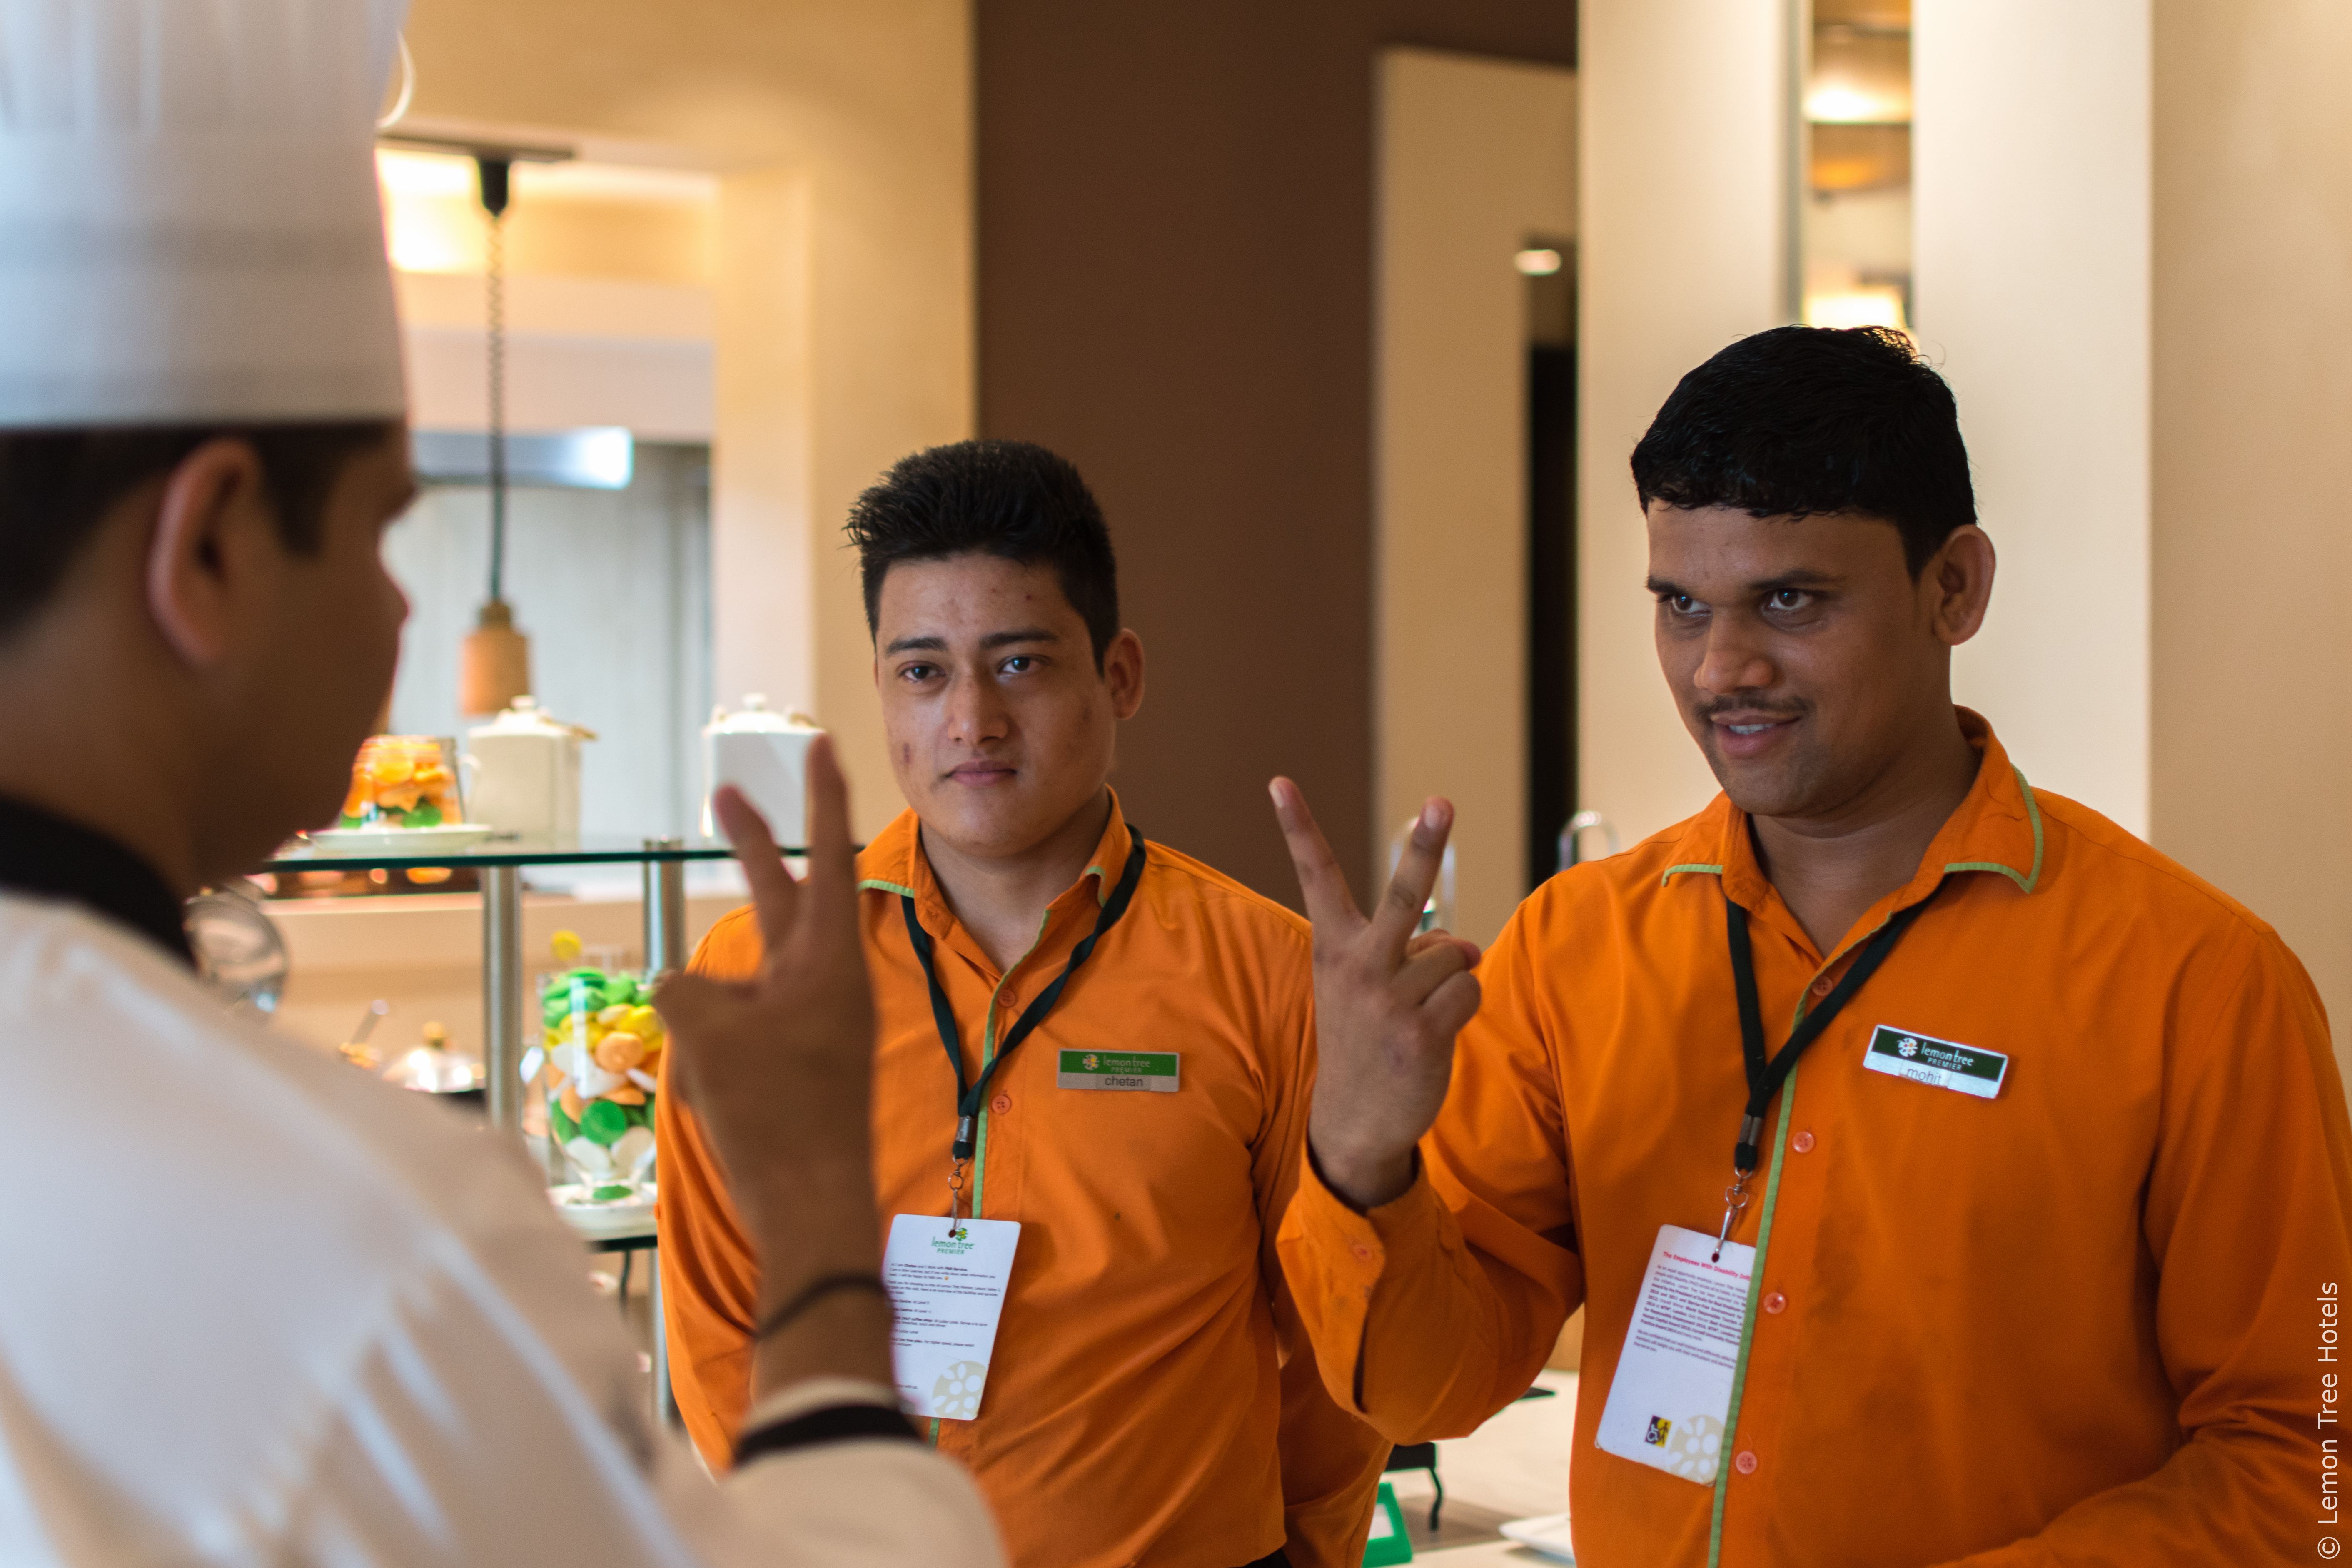 Lemon Tree Hotels Inclusiveness Staff - STAAH